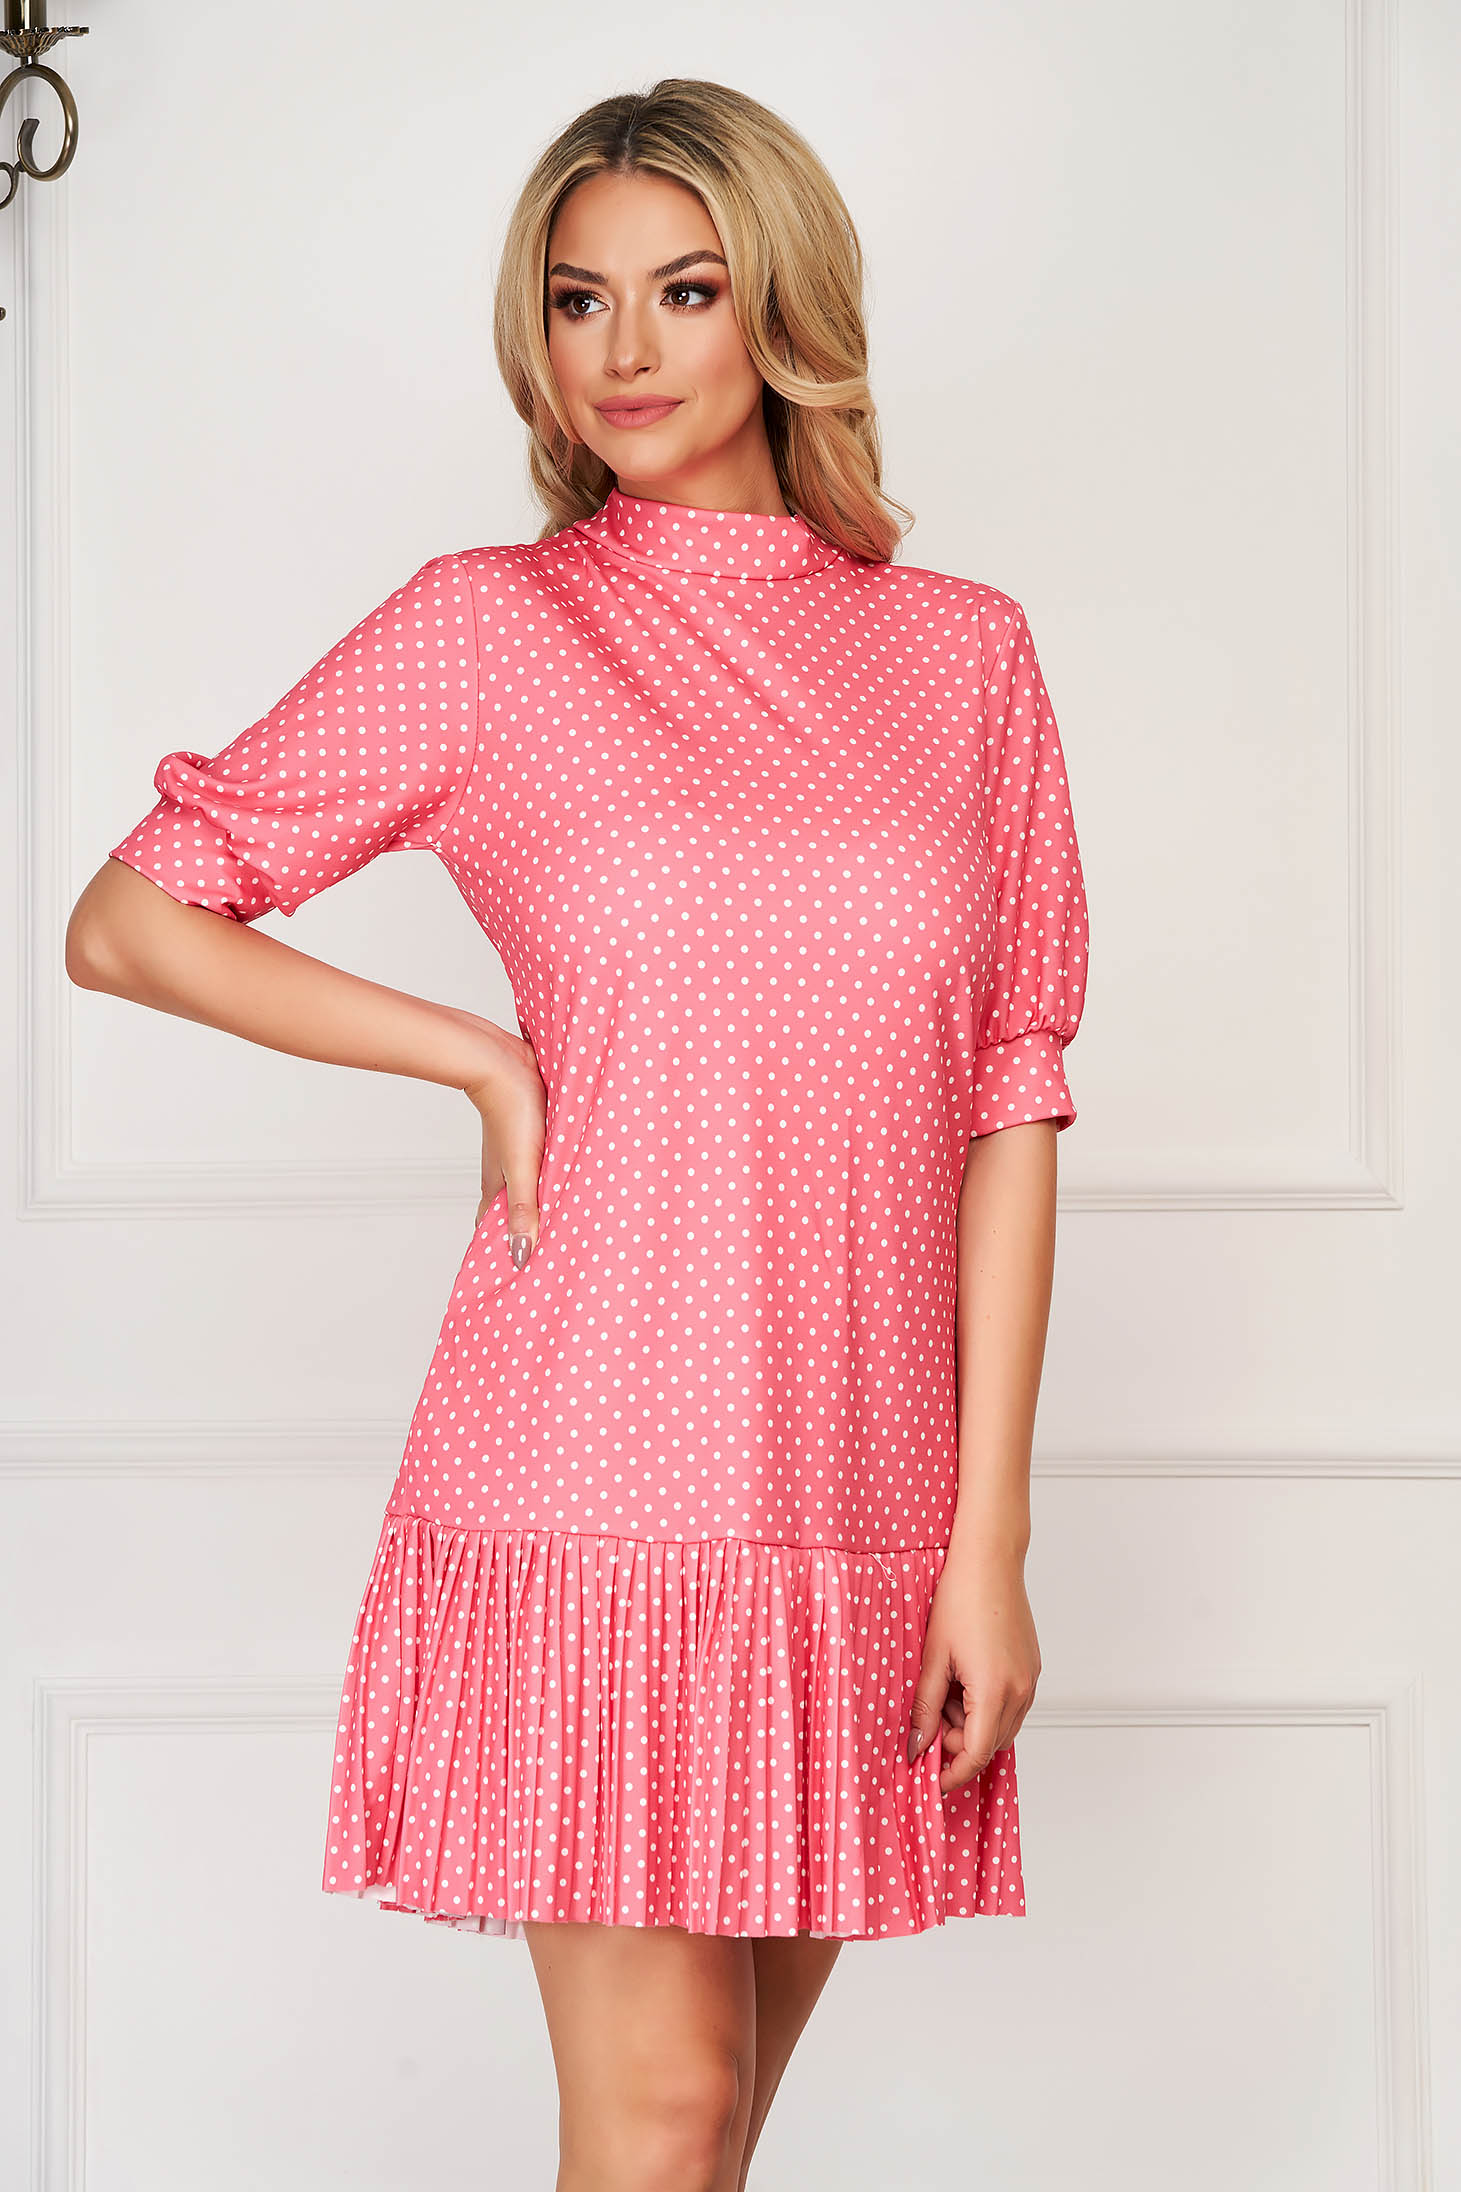 Coral dress short cut daily flared thin fabric dots print